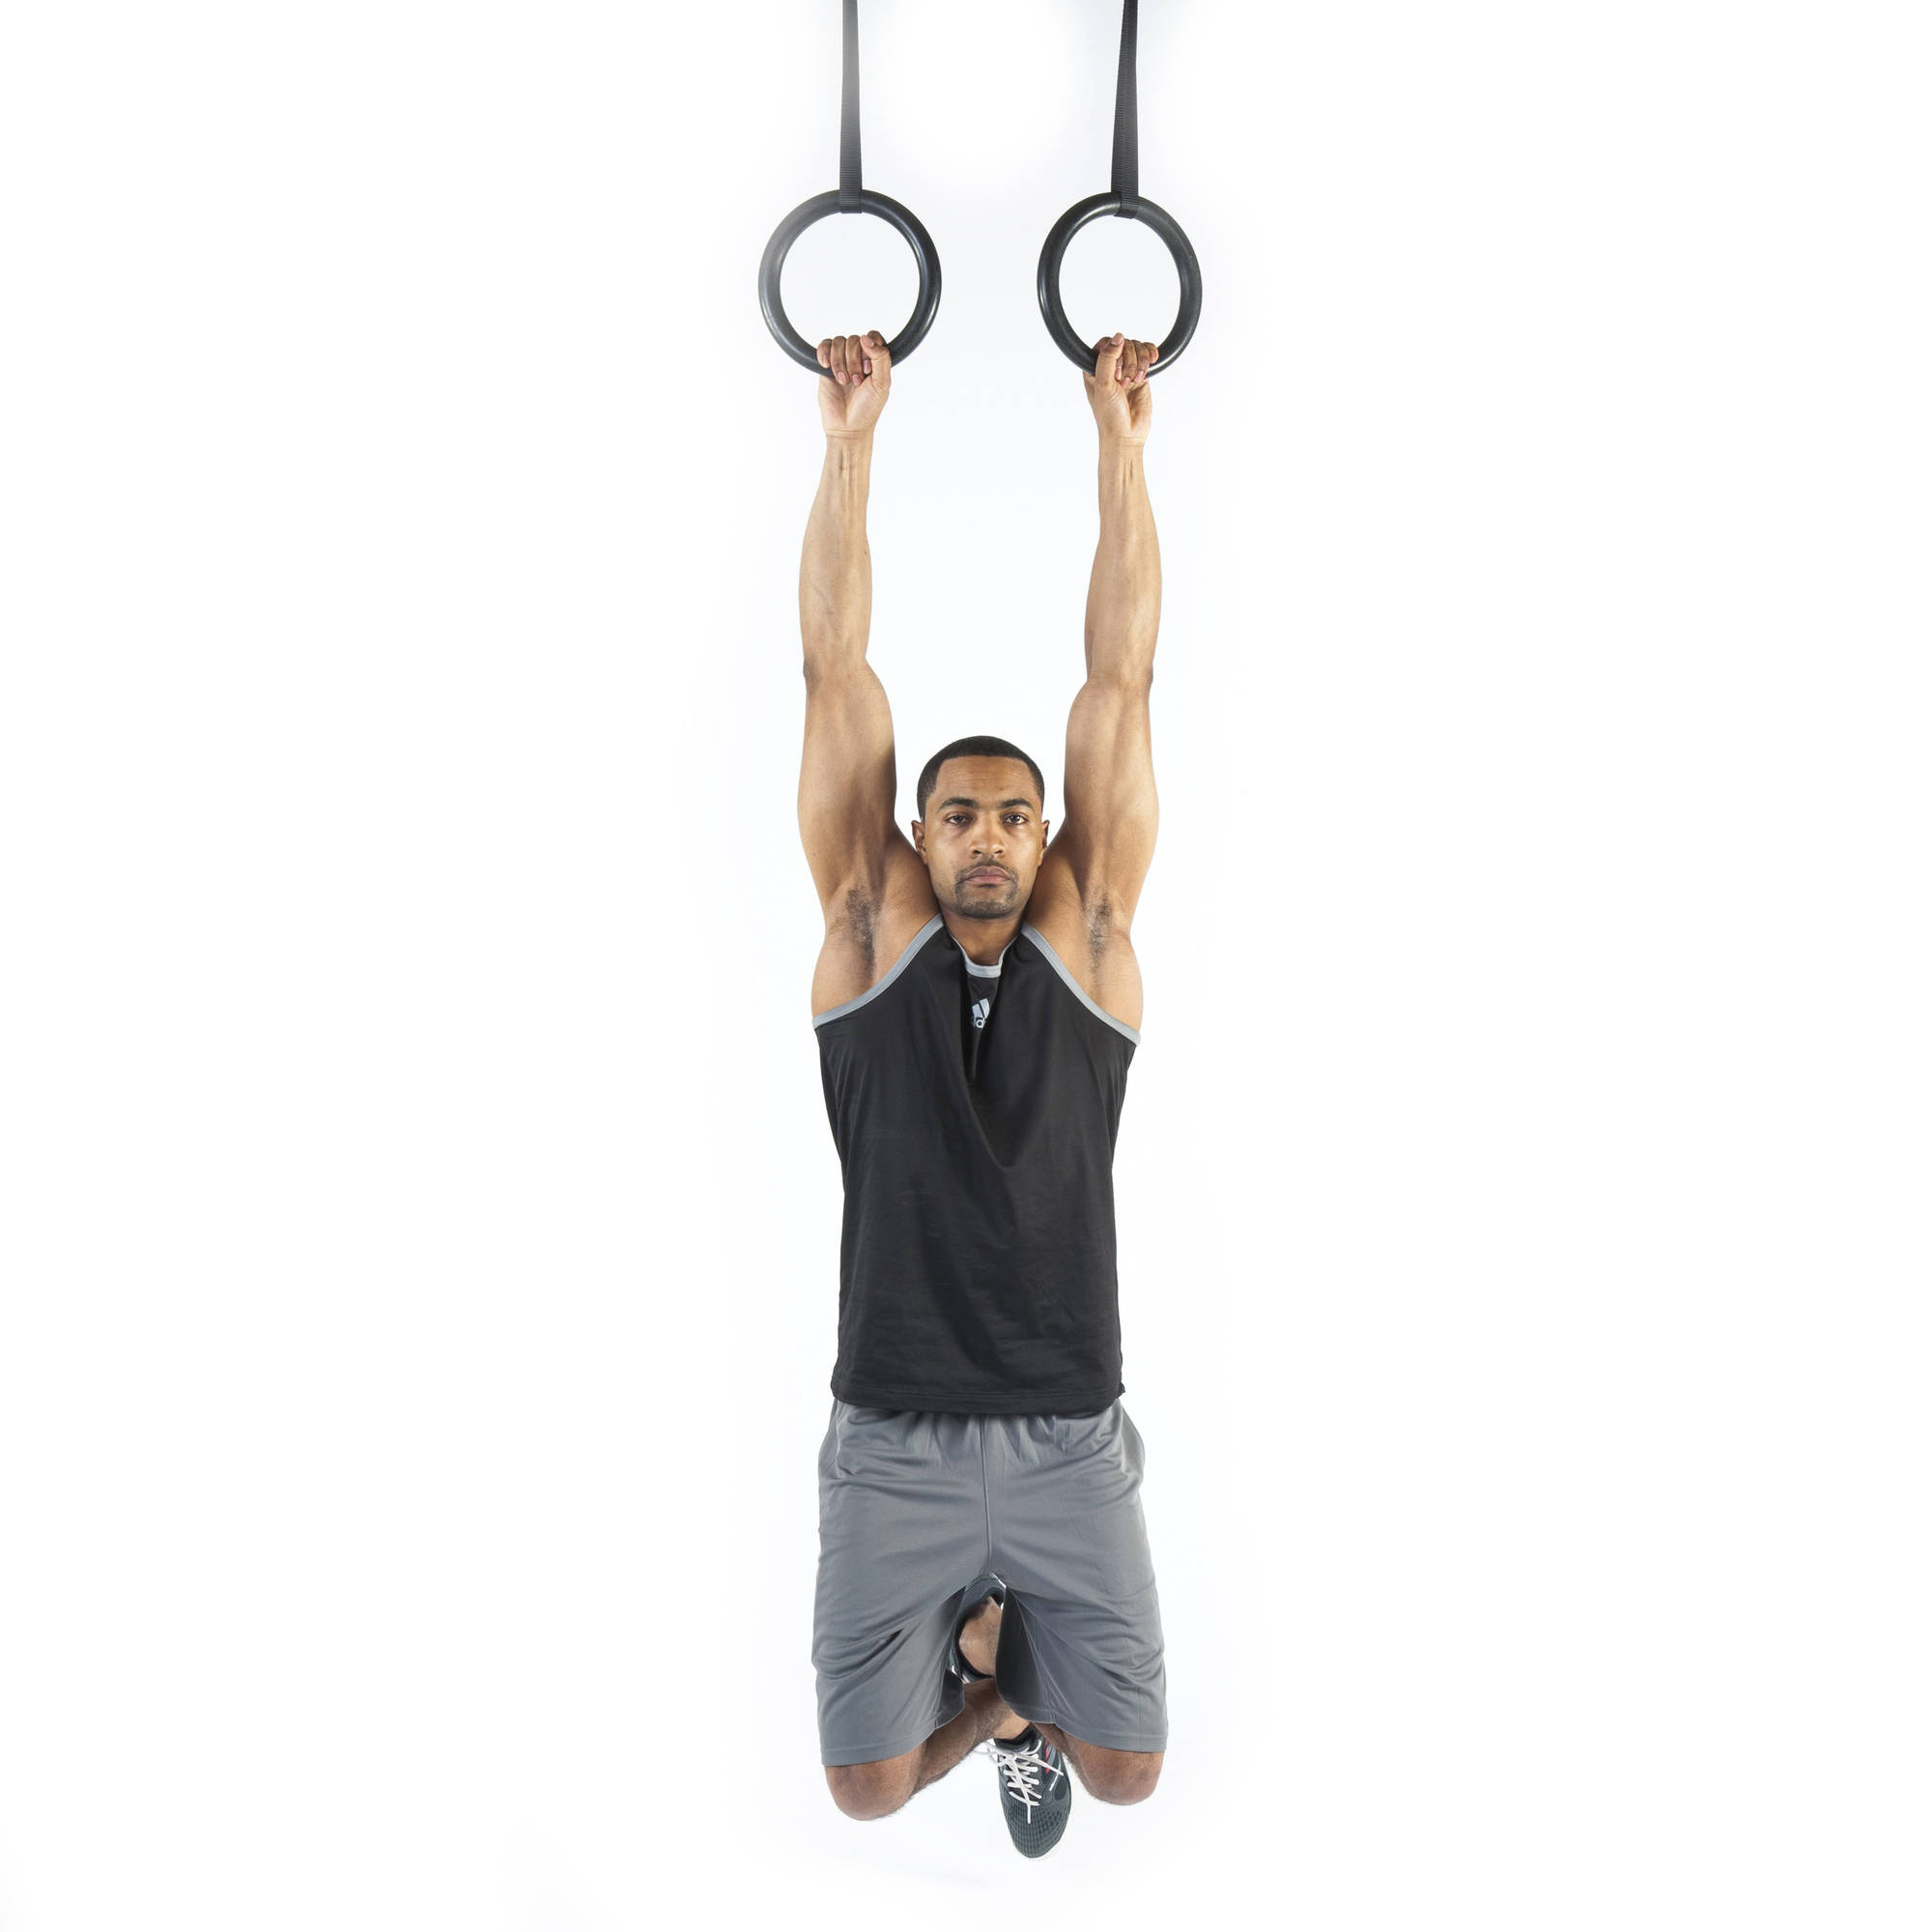 rings of exercise integrated additional esp fitness for option cross onto the frame variety climb exercises an functional a pin rope bar and frames including high